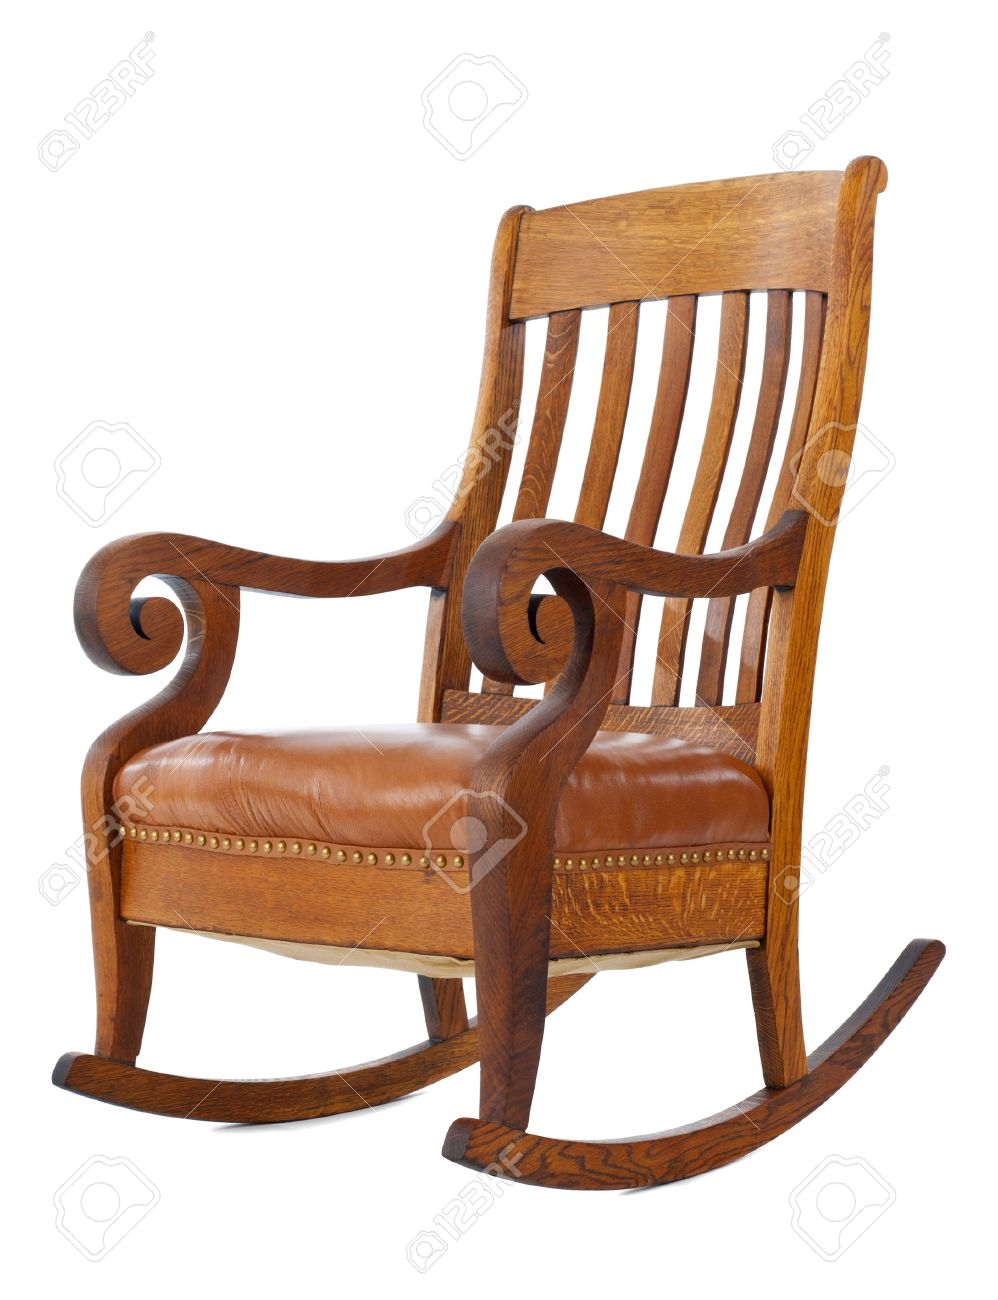 Wood Rocking Chair Antique Wooden Rocking Chair Isolated On White Background